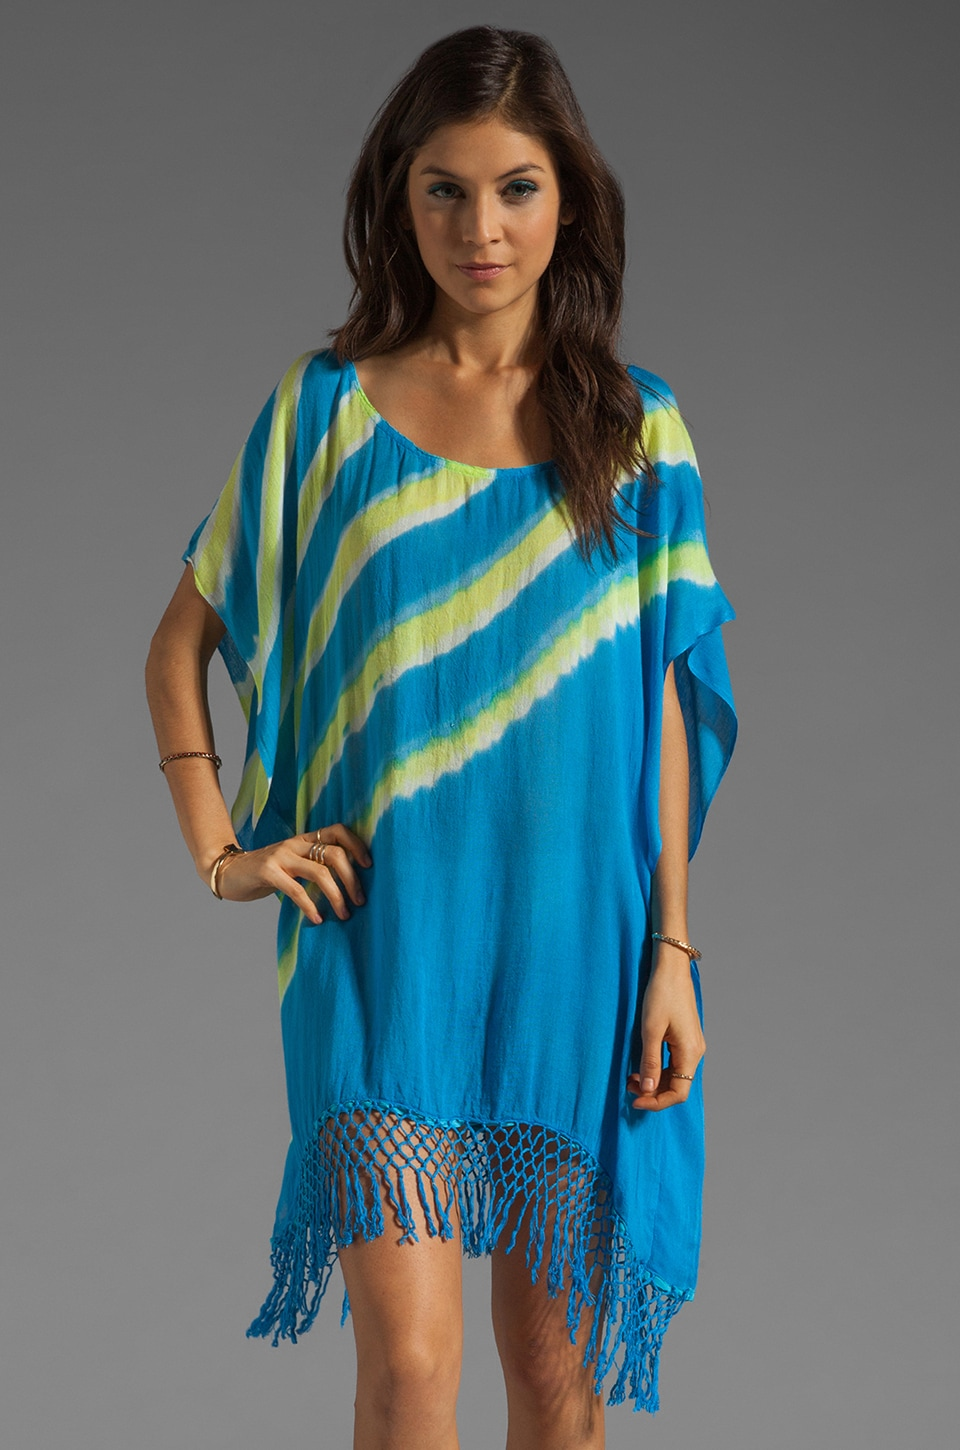 Gypsy 05 Swimsuit Cover Up in Electric Blue